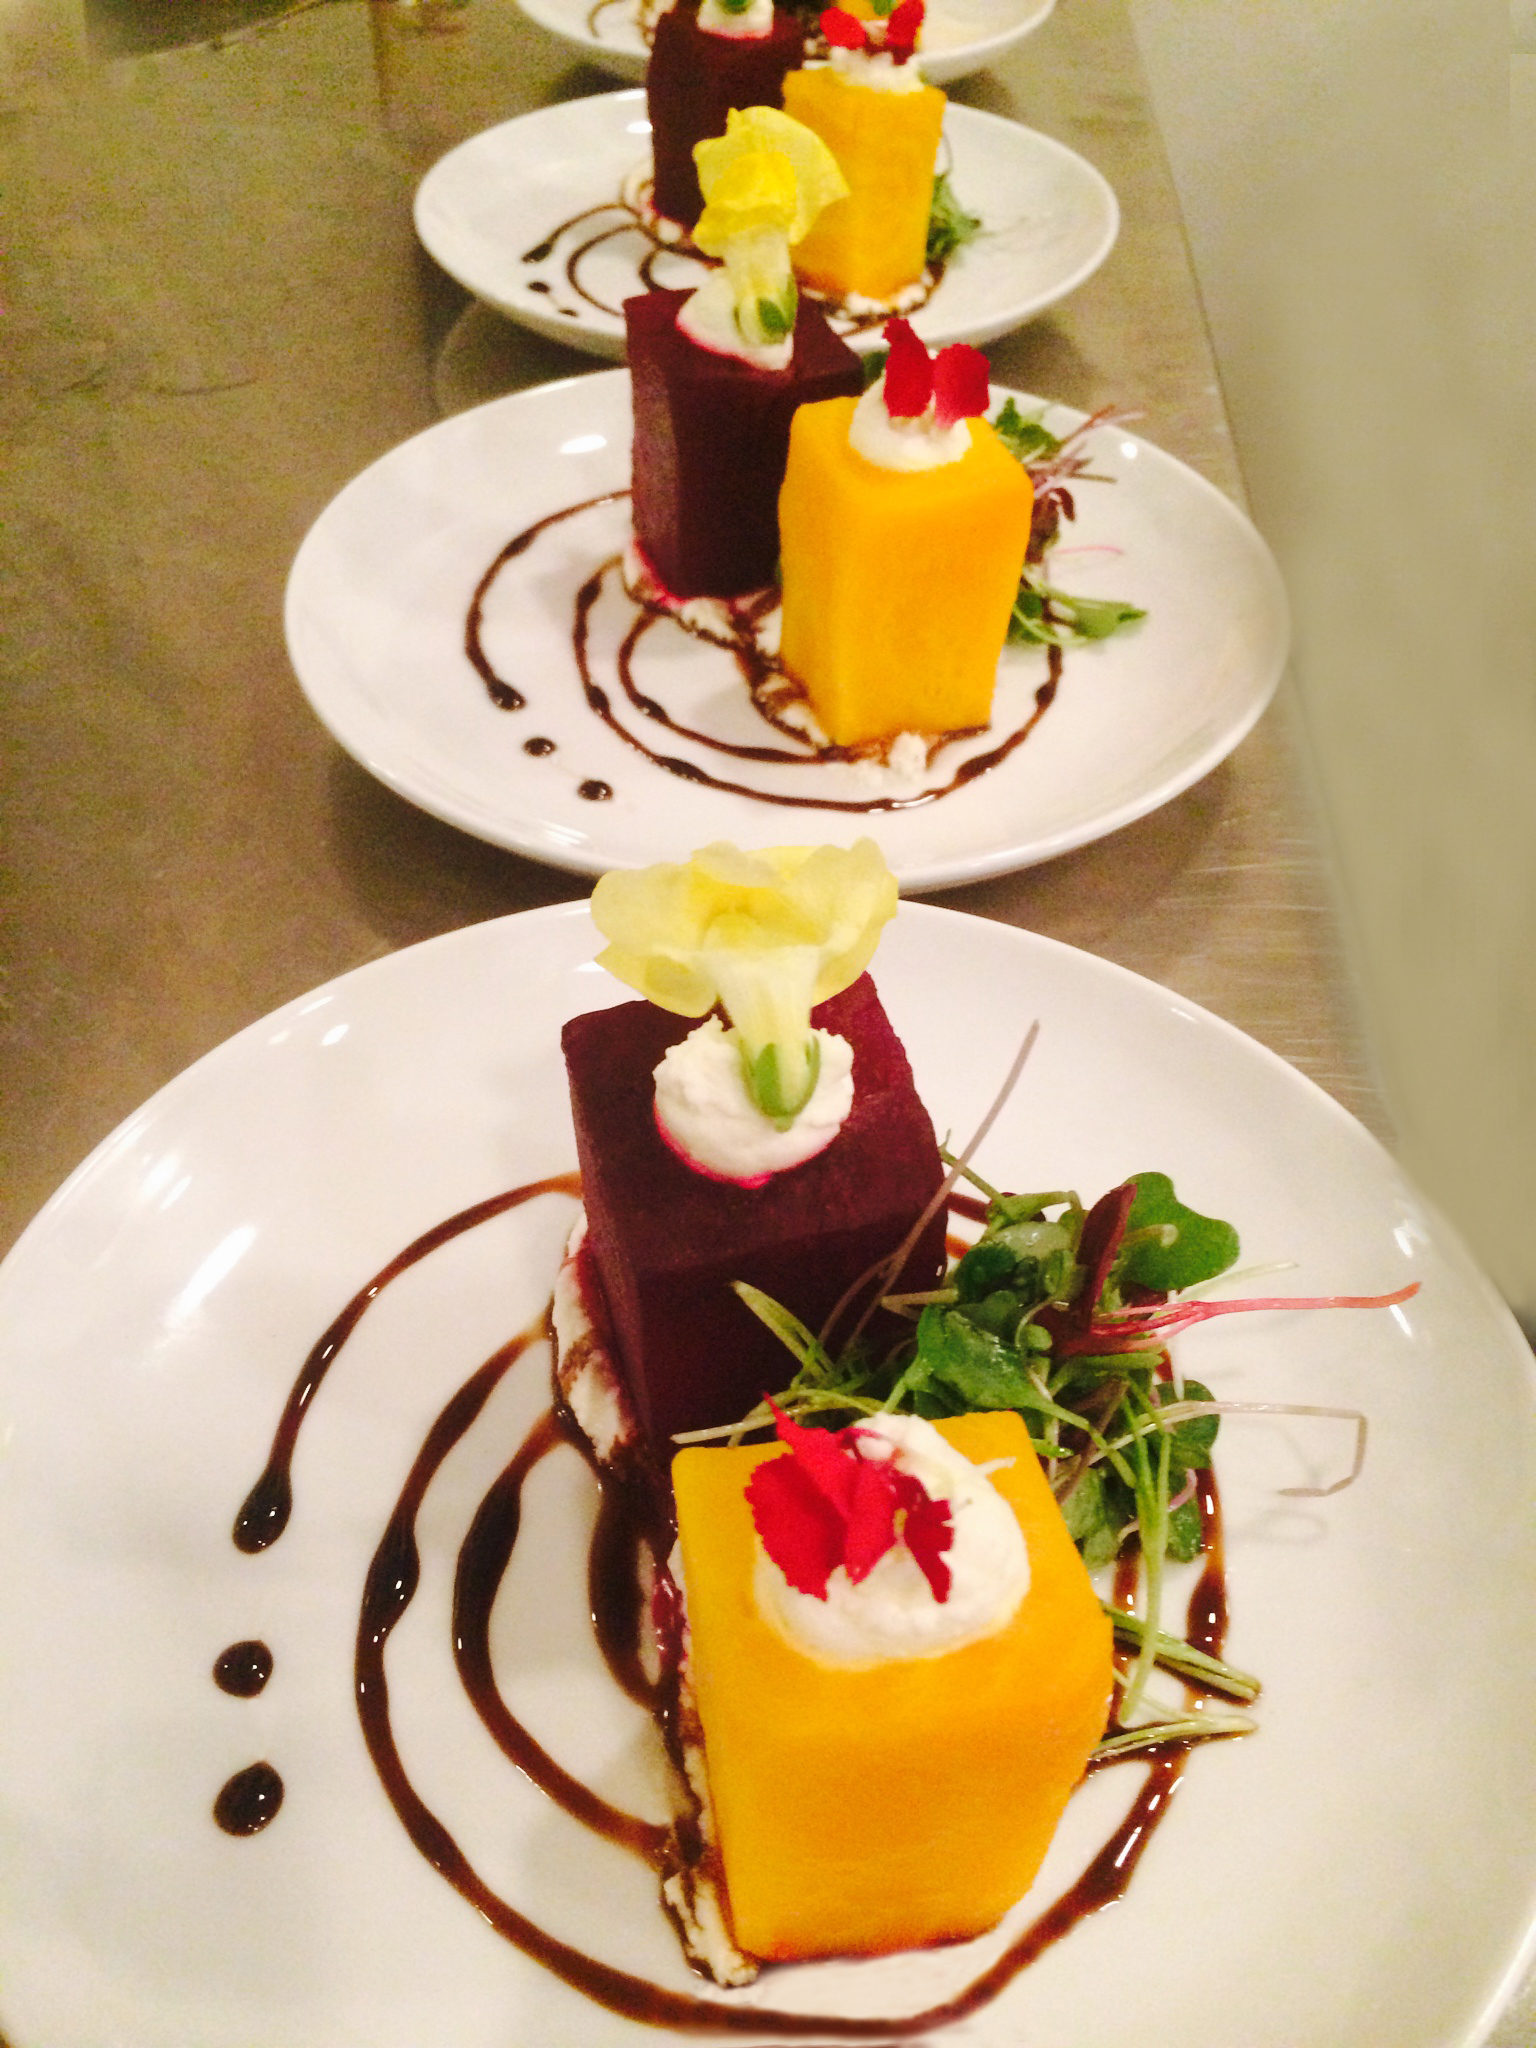 Our Beet Cube Salad